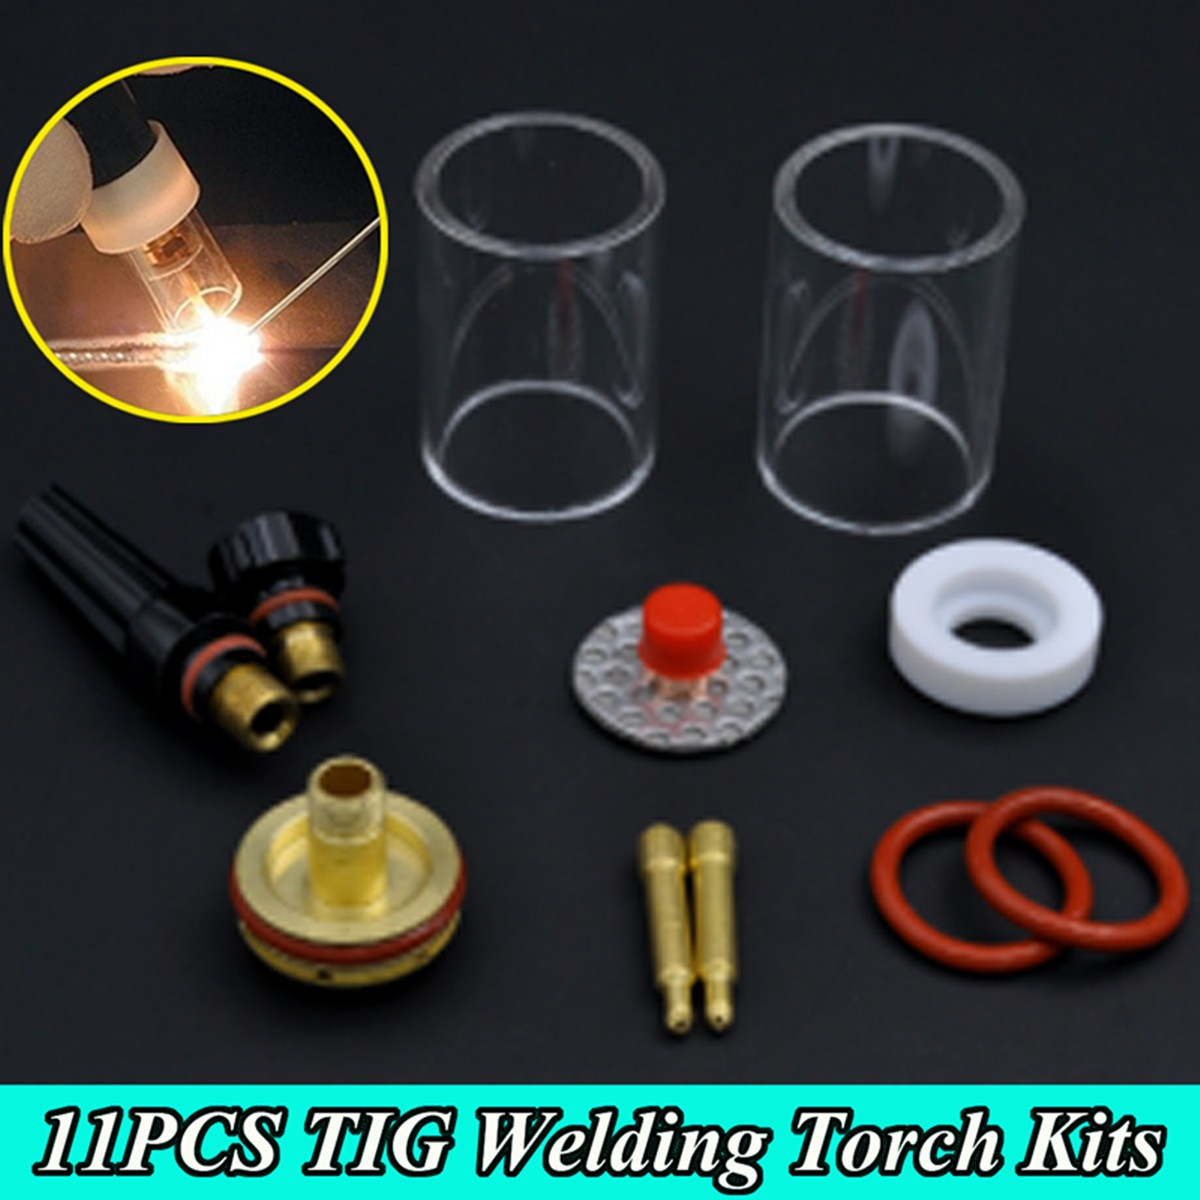 New 11Pcs TIG Welding Torch Stubby Gas Lens Glass Cup Kit For WP17/18/26 2.4mm 3/32 wp 17f sr 17f tig welding torch complete 20feet 6meter soldering iron flexible